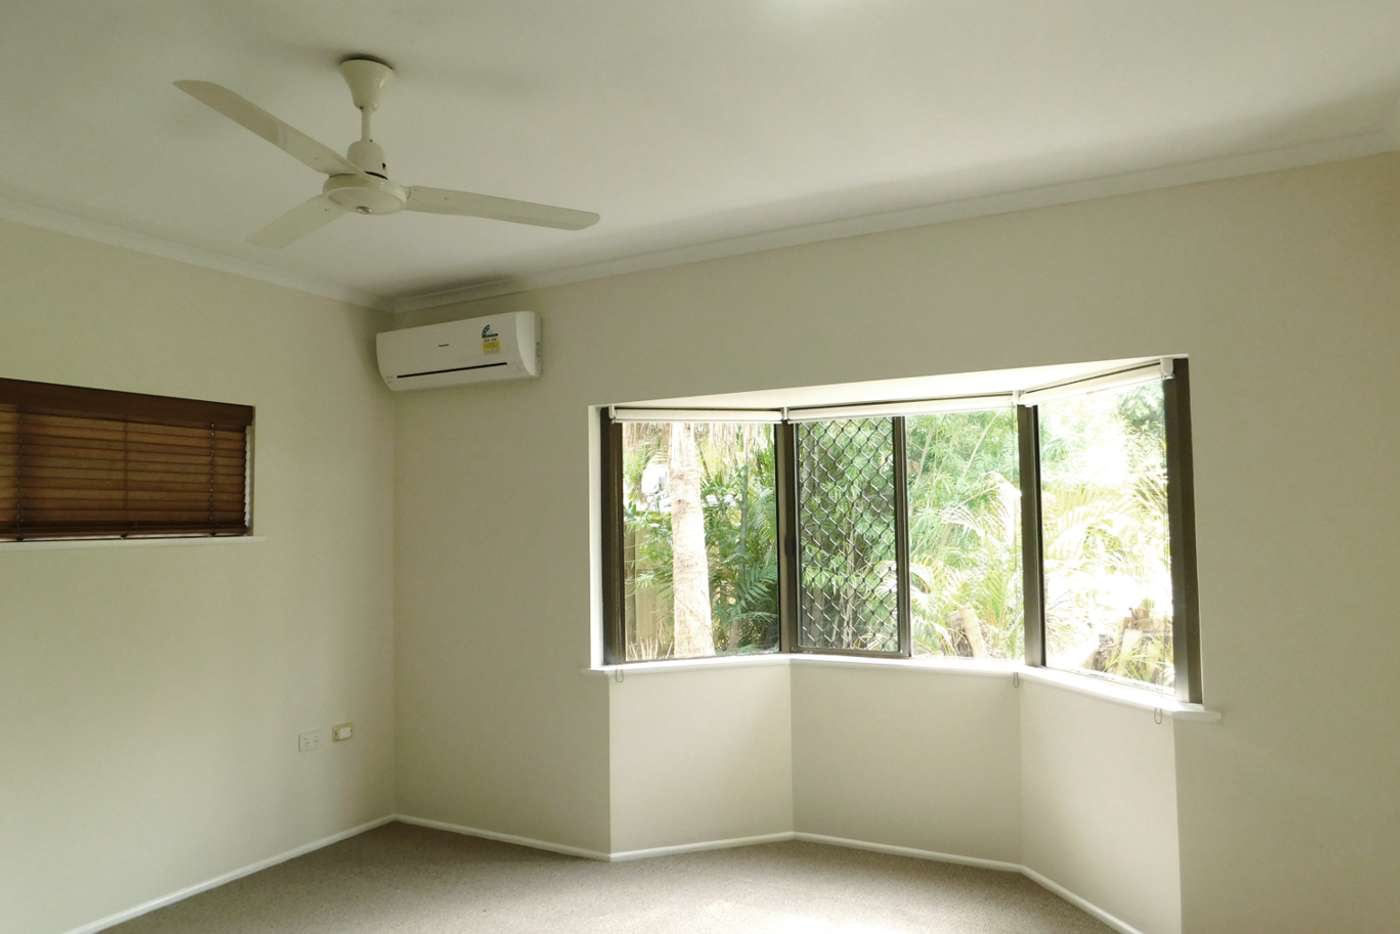 Fifth view of Homely house listing, 14 Beaver St, Clifton Beach QLD 4879